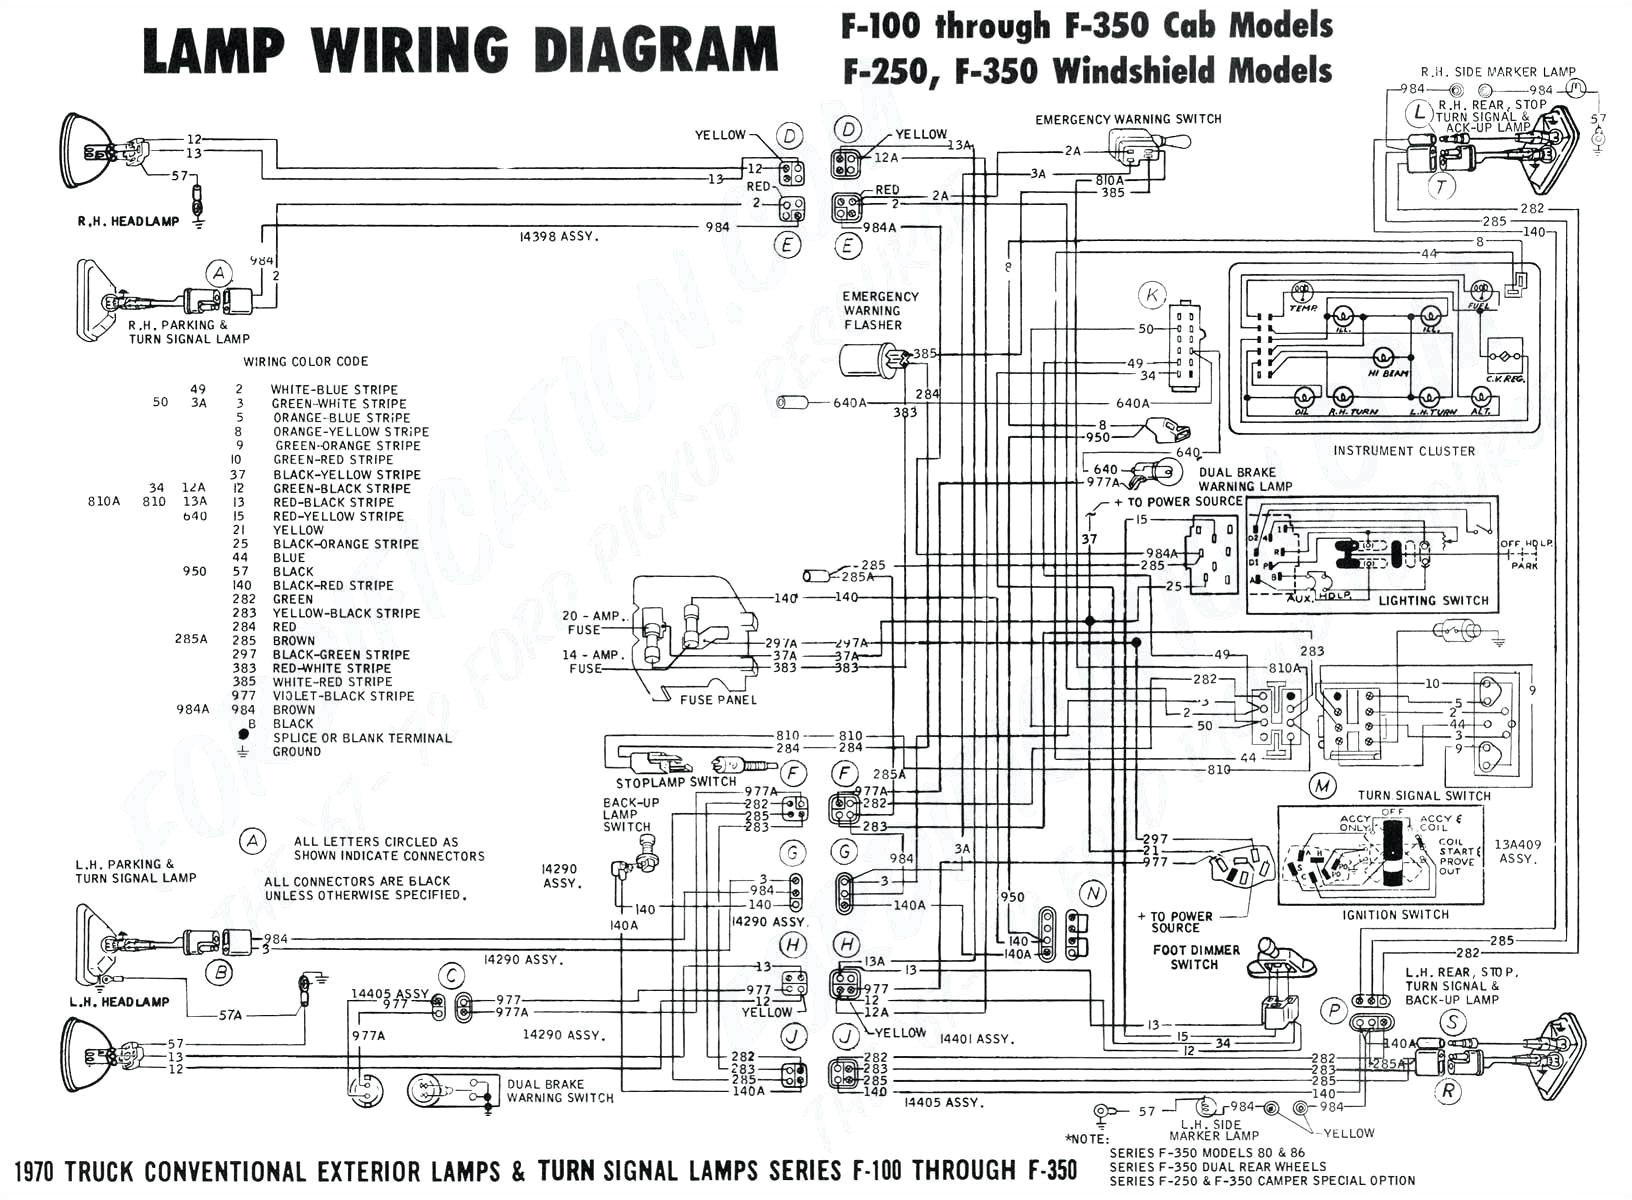 Free Download Js1000 Wiring Diagram. signal stat 900 wiring diagram  autocardesign. 1979 corvette wiring diagram autocardesign. jvc kd r730bt wiring  diagram autocardesign. totaline thermostat wiring diagram autocardesign.  new freightliner radio wiring ...2002-acura-tl-radio.info